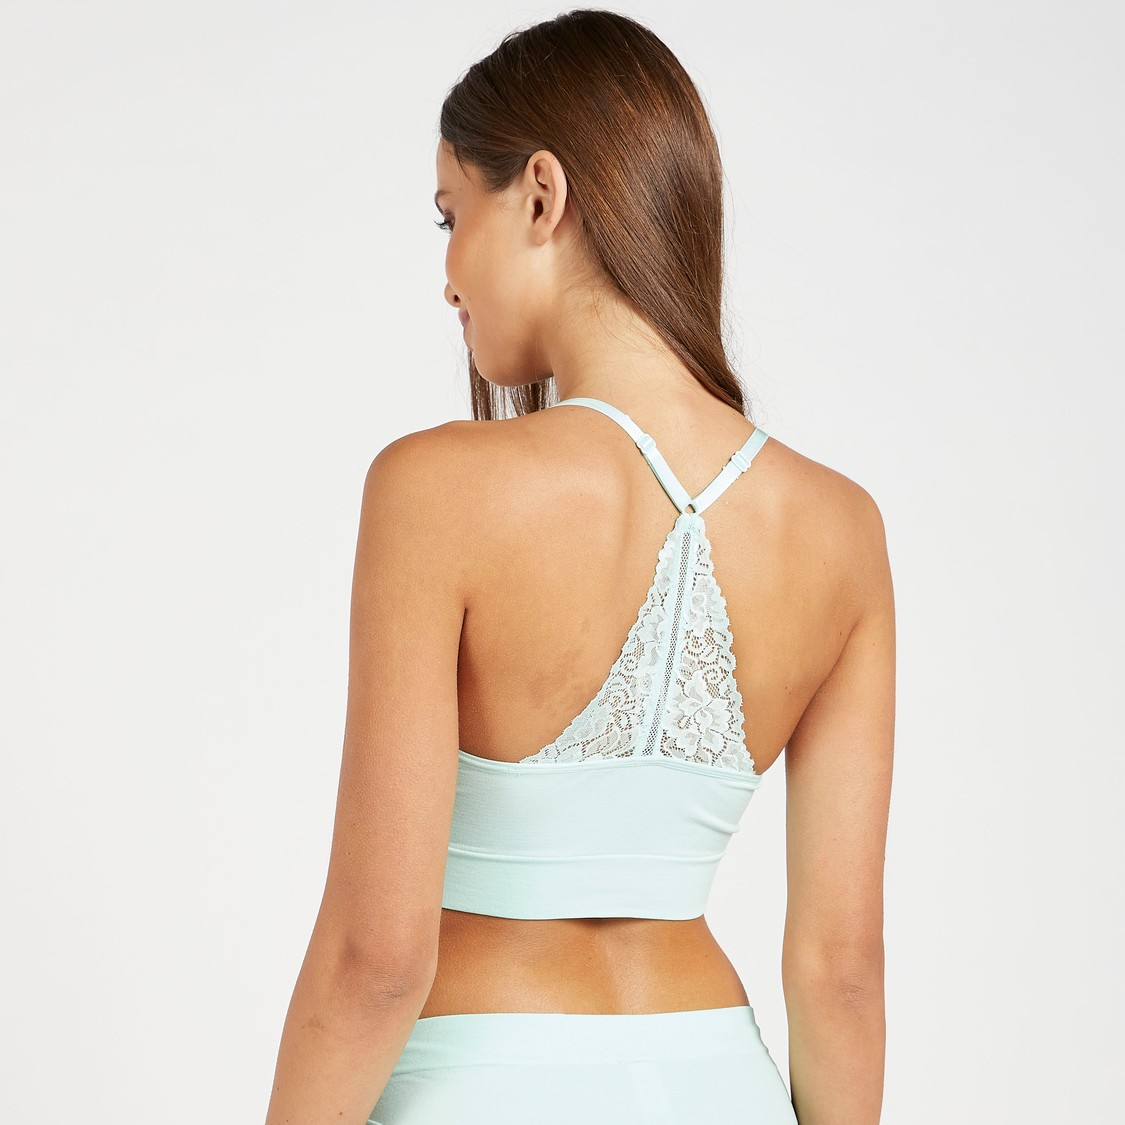 Solid Seamless Bra with Racerback and Lace Detail